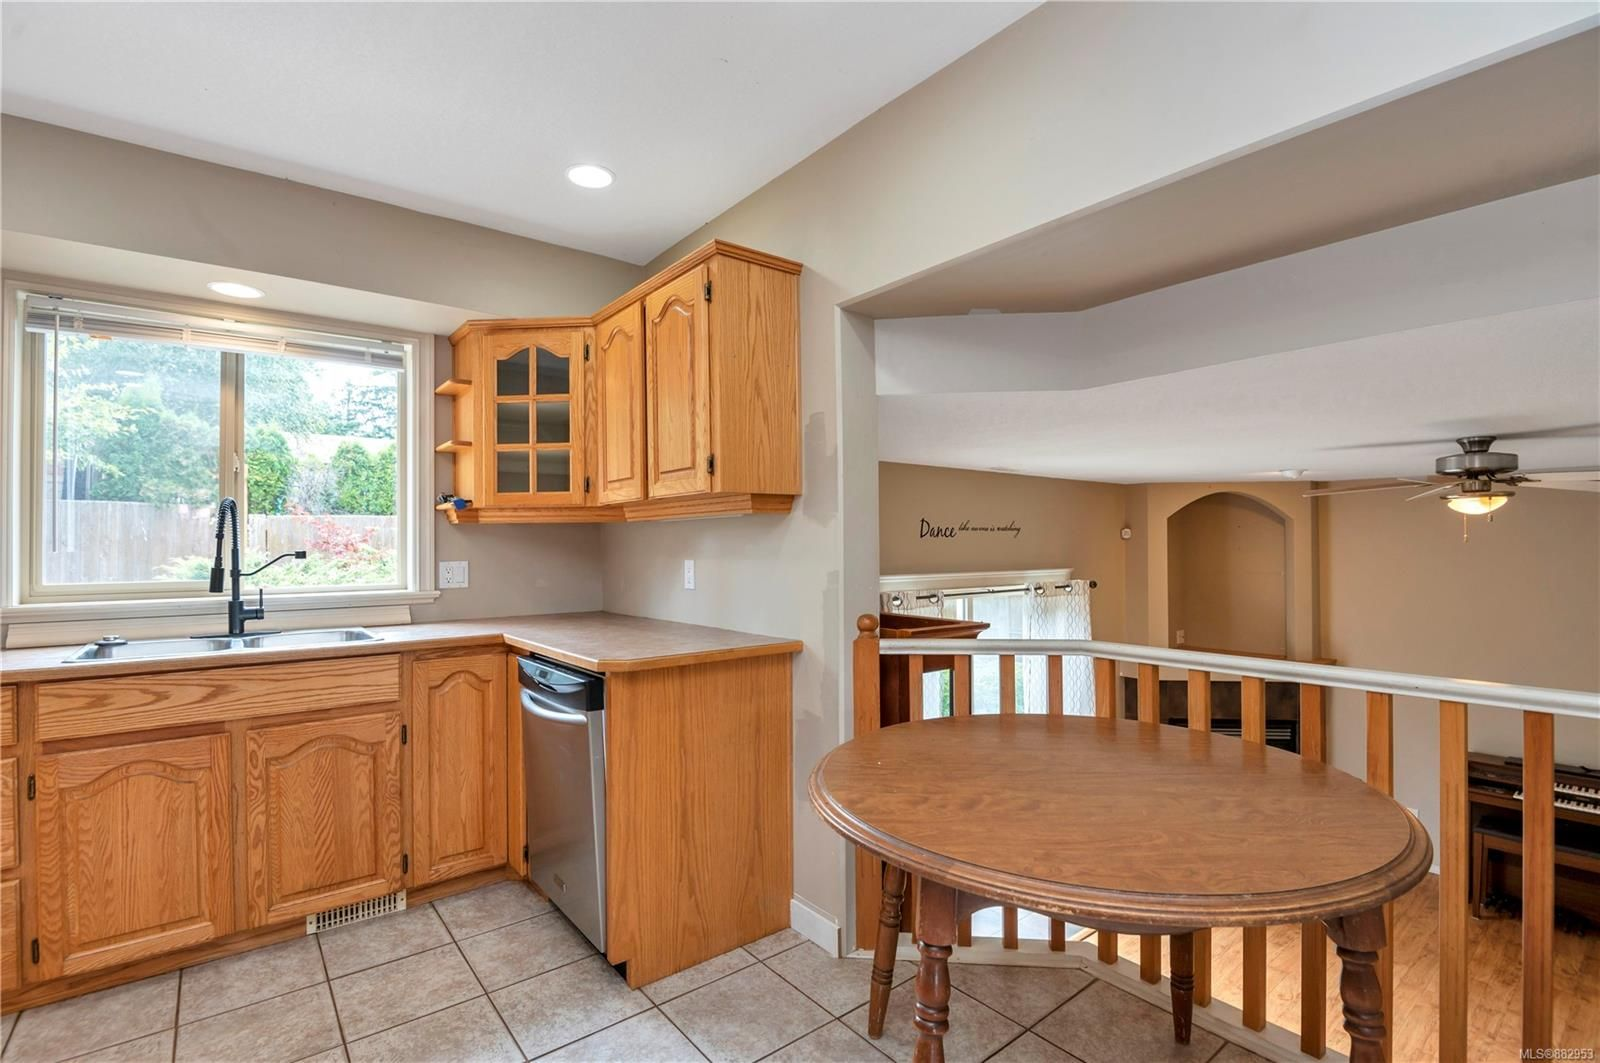 Photo 6: Photos: 732 Oribi Dr in : CR Campbell River Central House for sale (Campbell River)  : MLS®# 882953